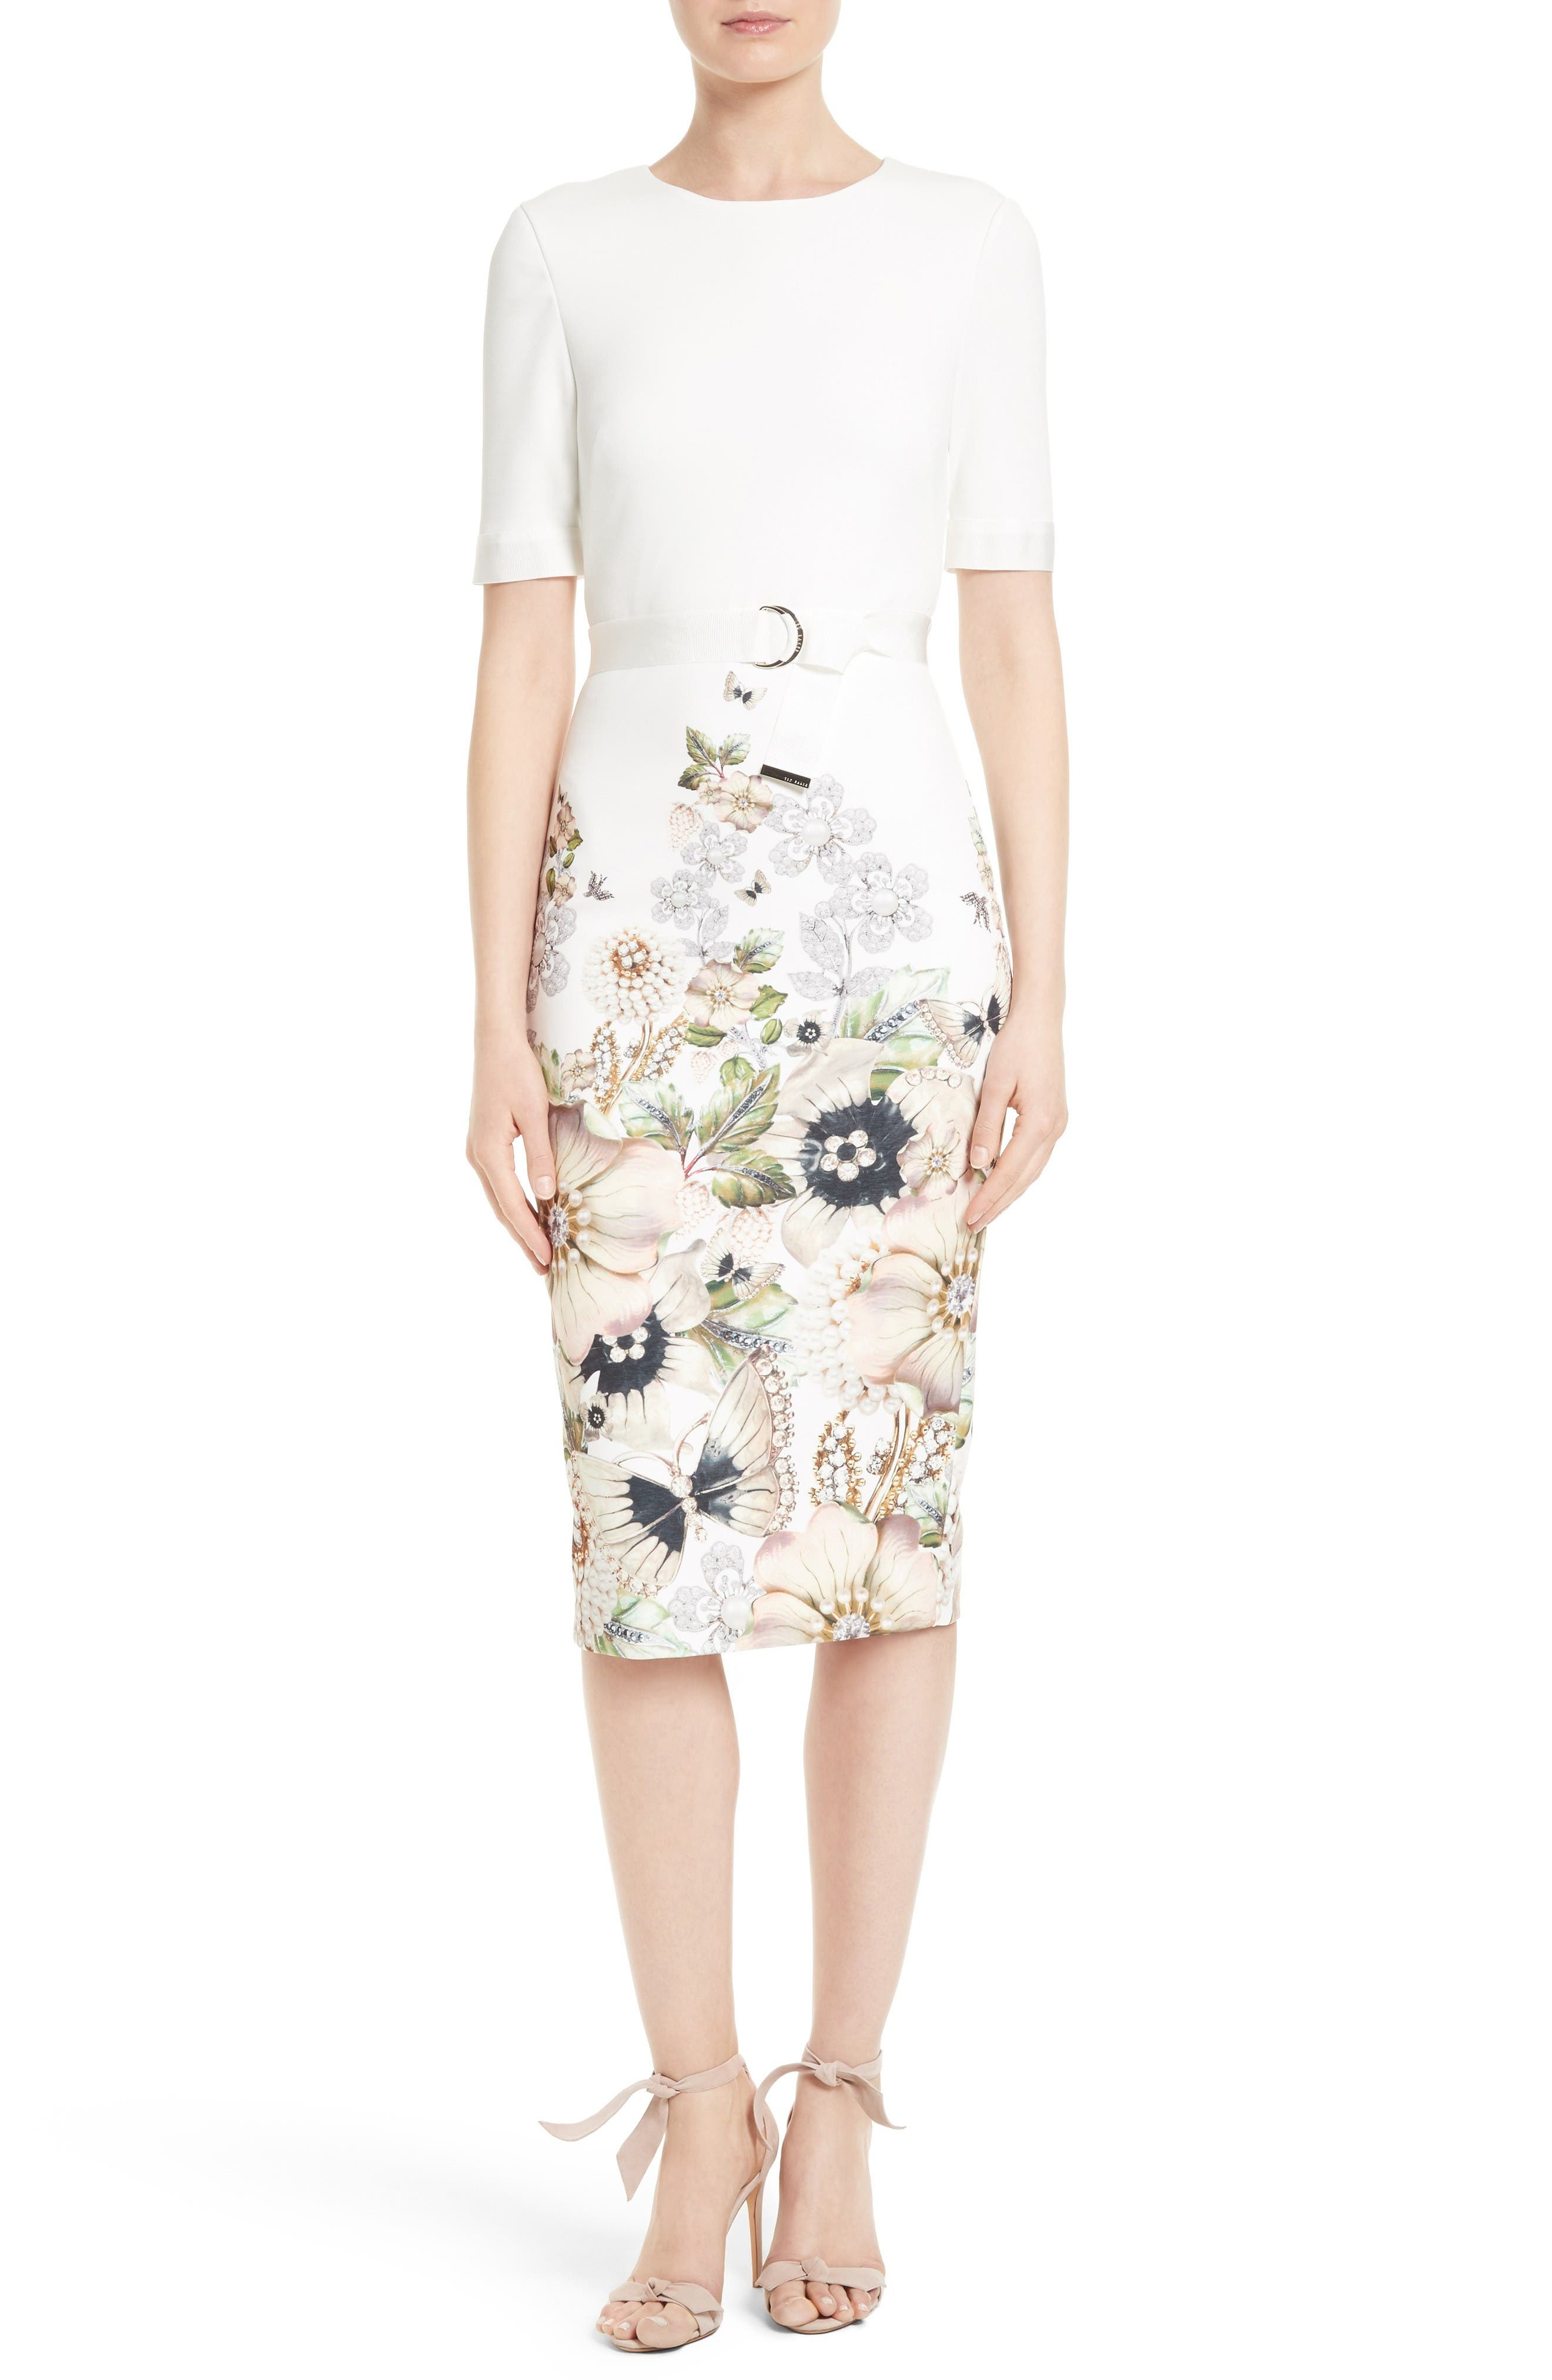 TED BAKER LONDON Layli Sheath Dress